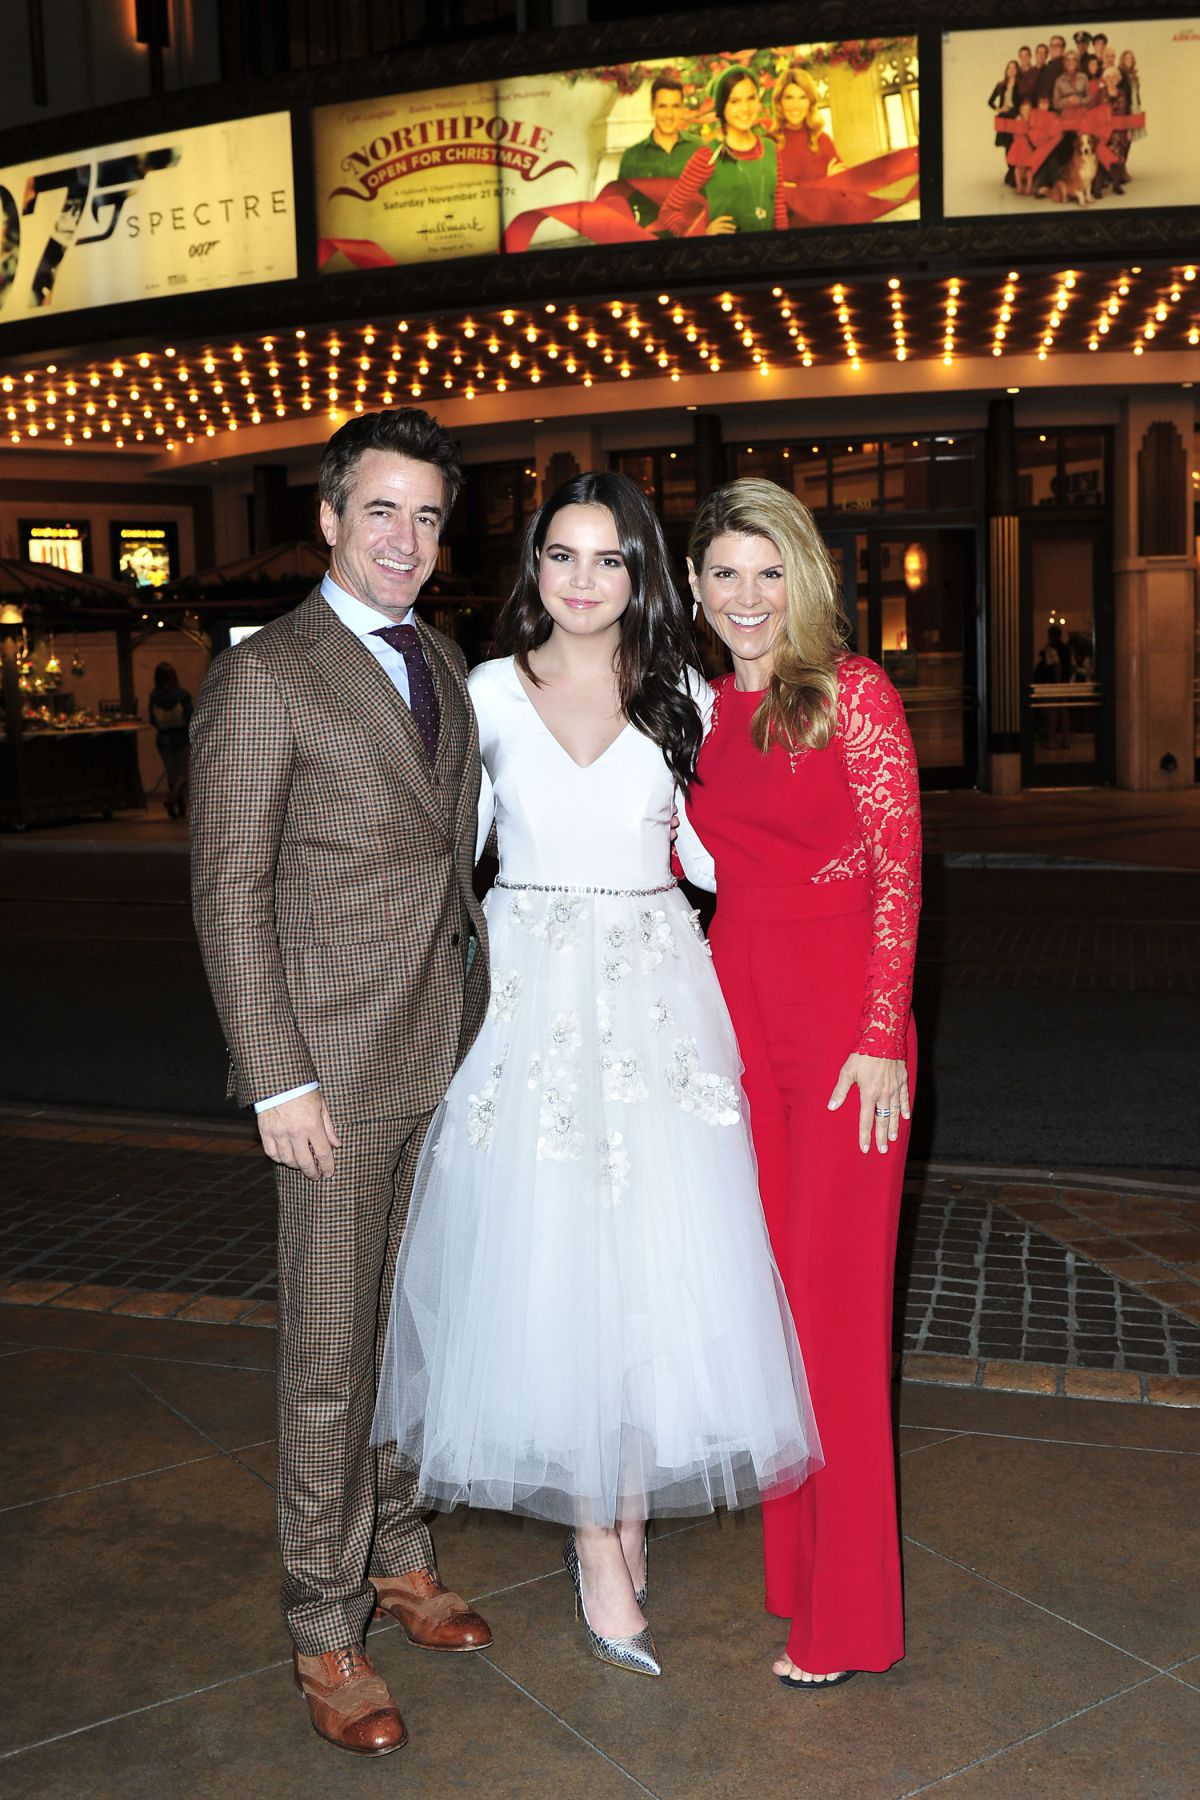 Northpole Open For Christmas.Bailee Madison At Northpole Open For Christmas Screening